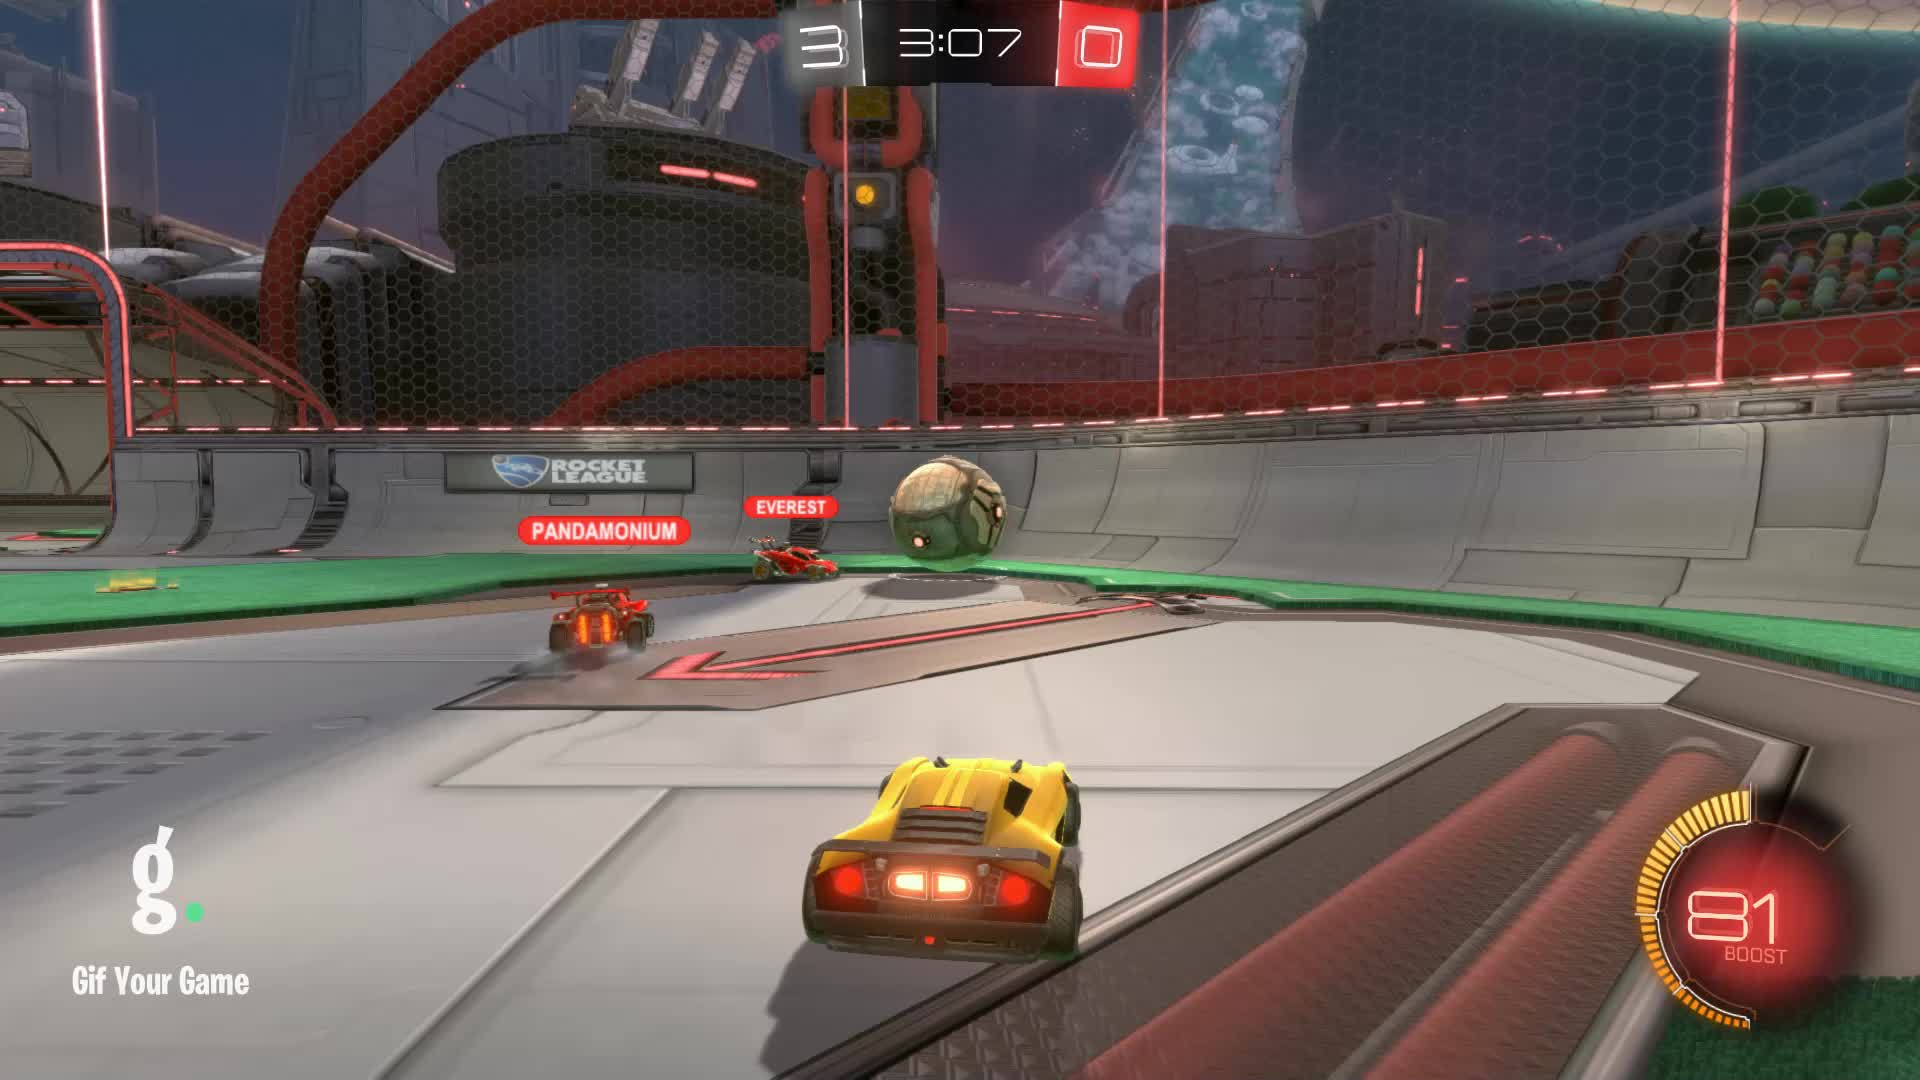 Assist, Gif Your Game, GifYourGame, Rocket League, RocketLeague, datboi, Assist 2: datboi GIFs